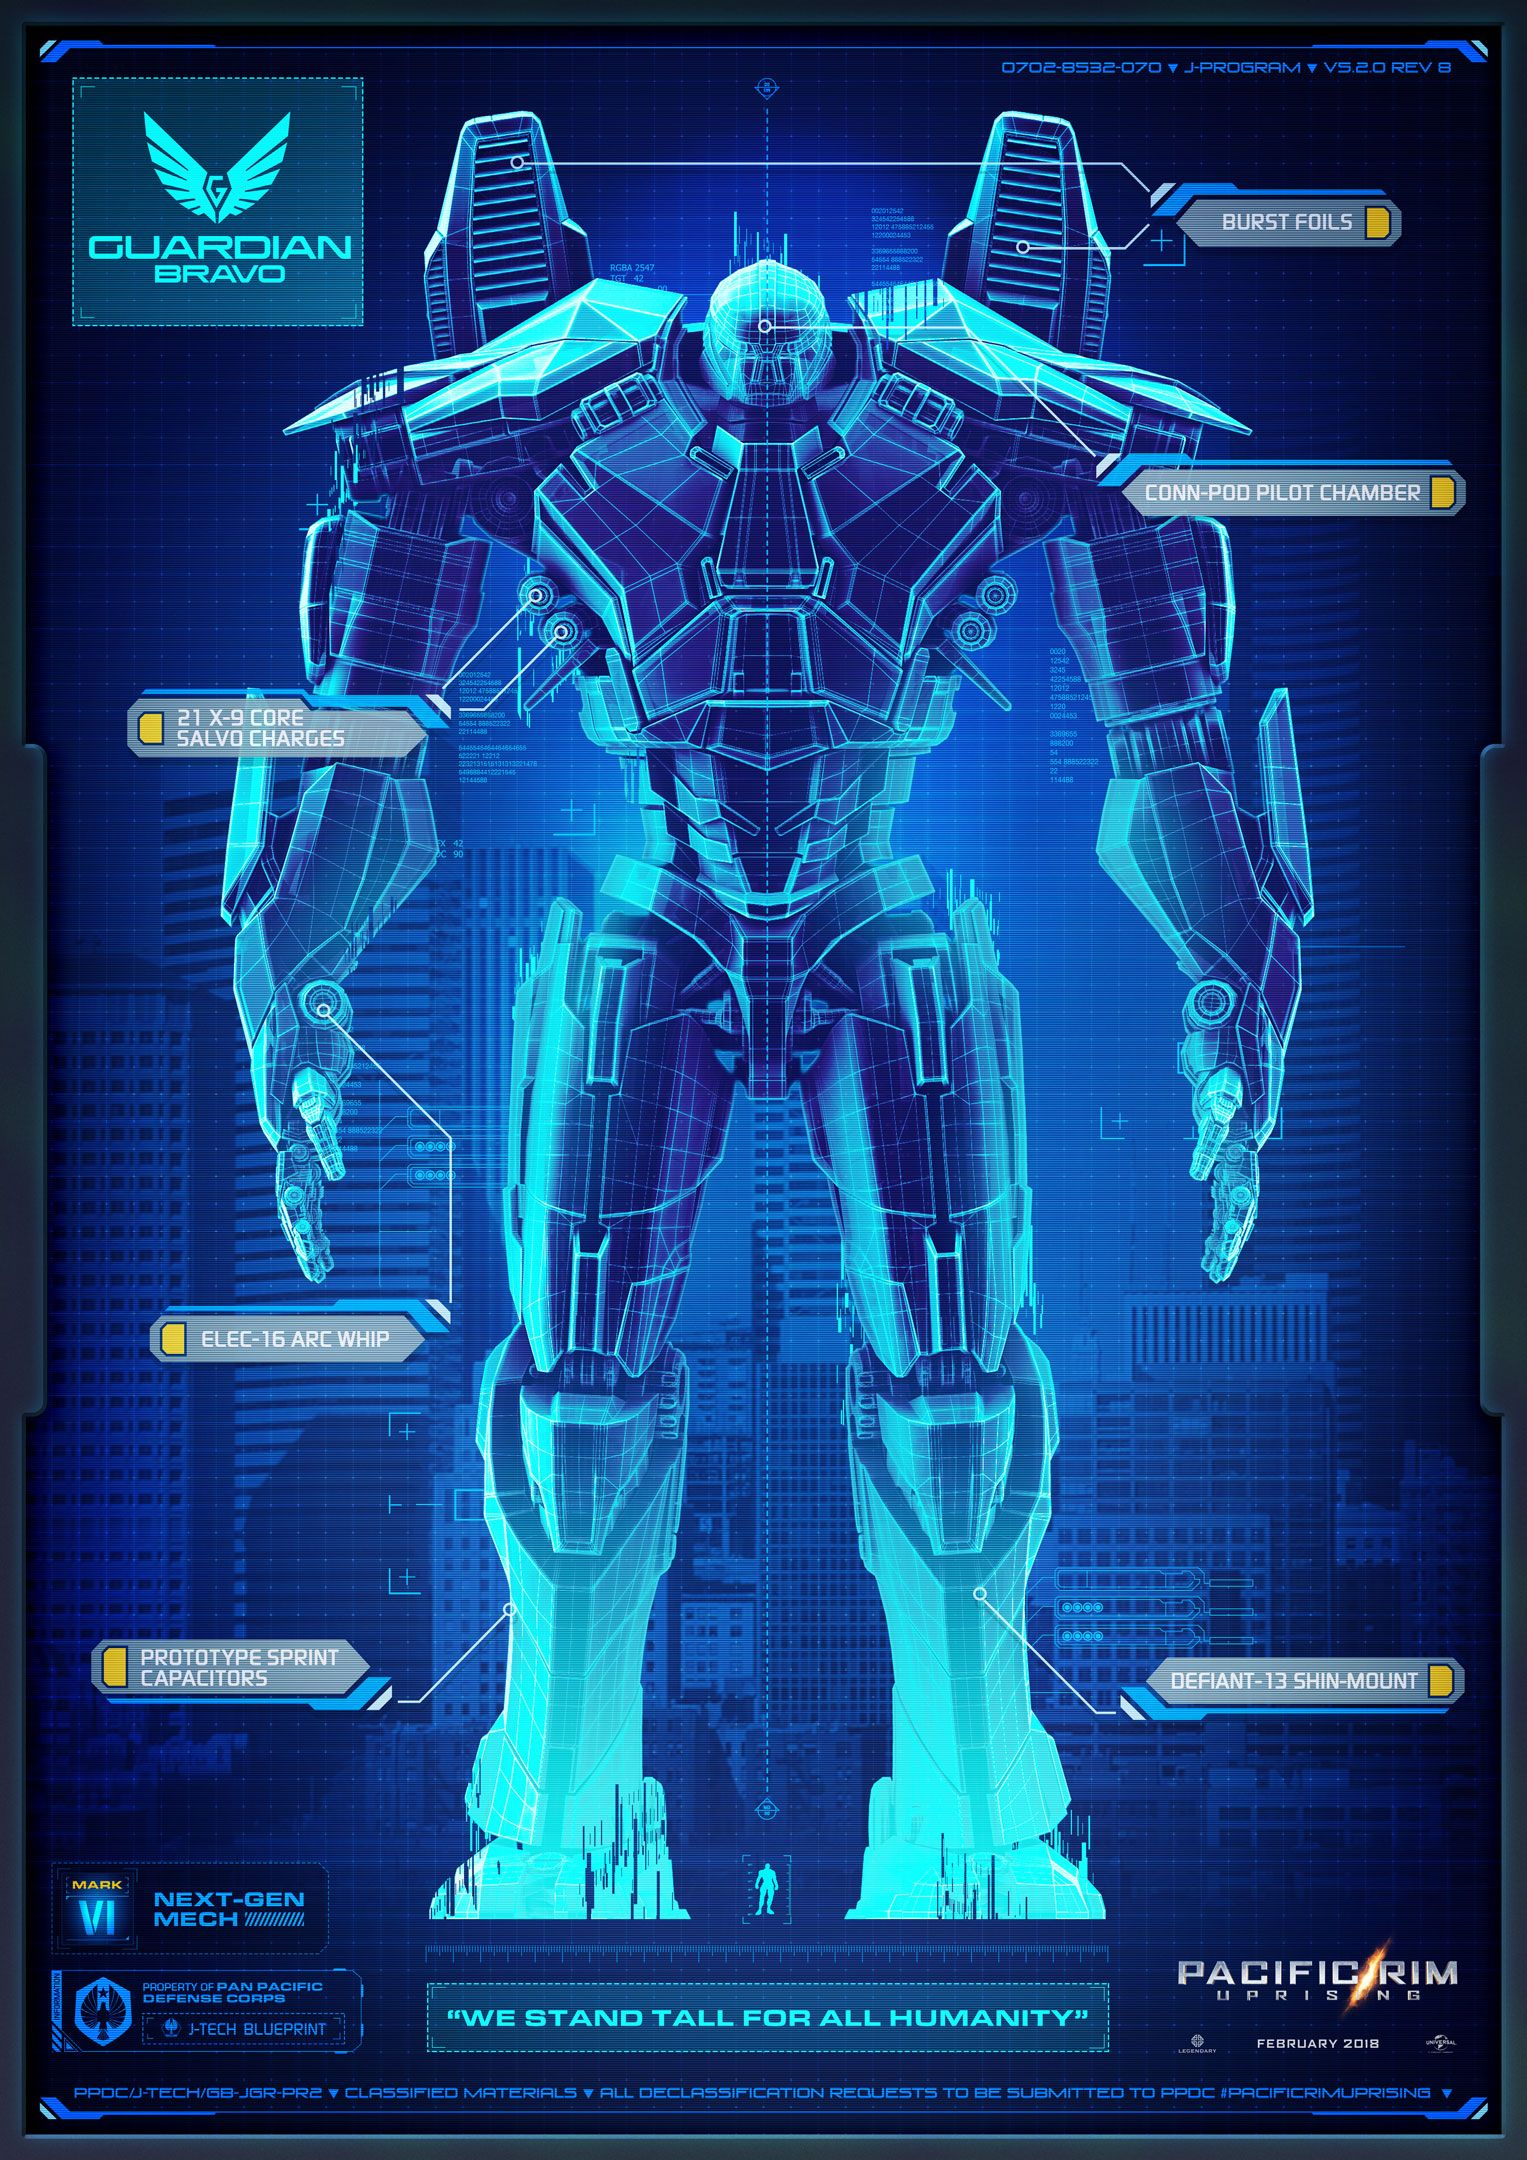 Blueprints and specs for jaegers involved in pr uprising imgur blueprints and specs for jaegers involved in pr uprising imgur malvernweather Choice Image